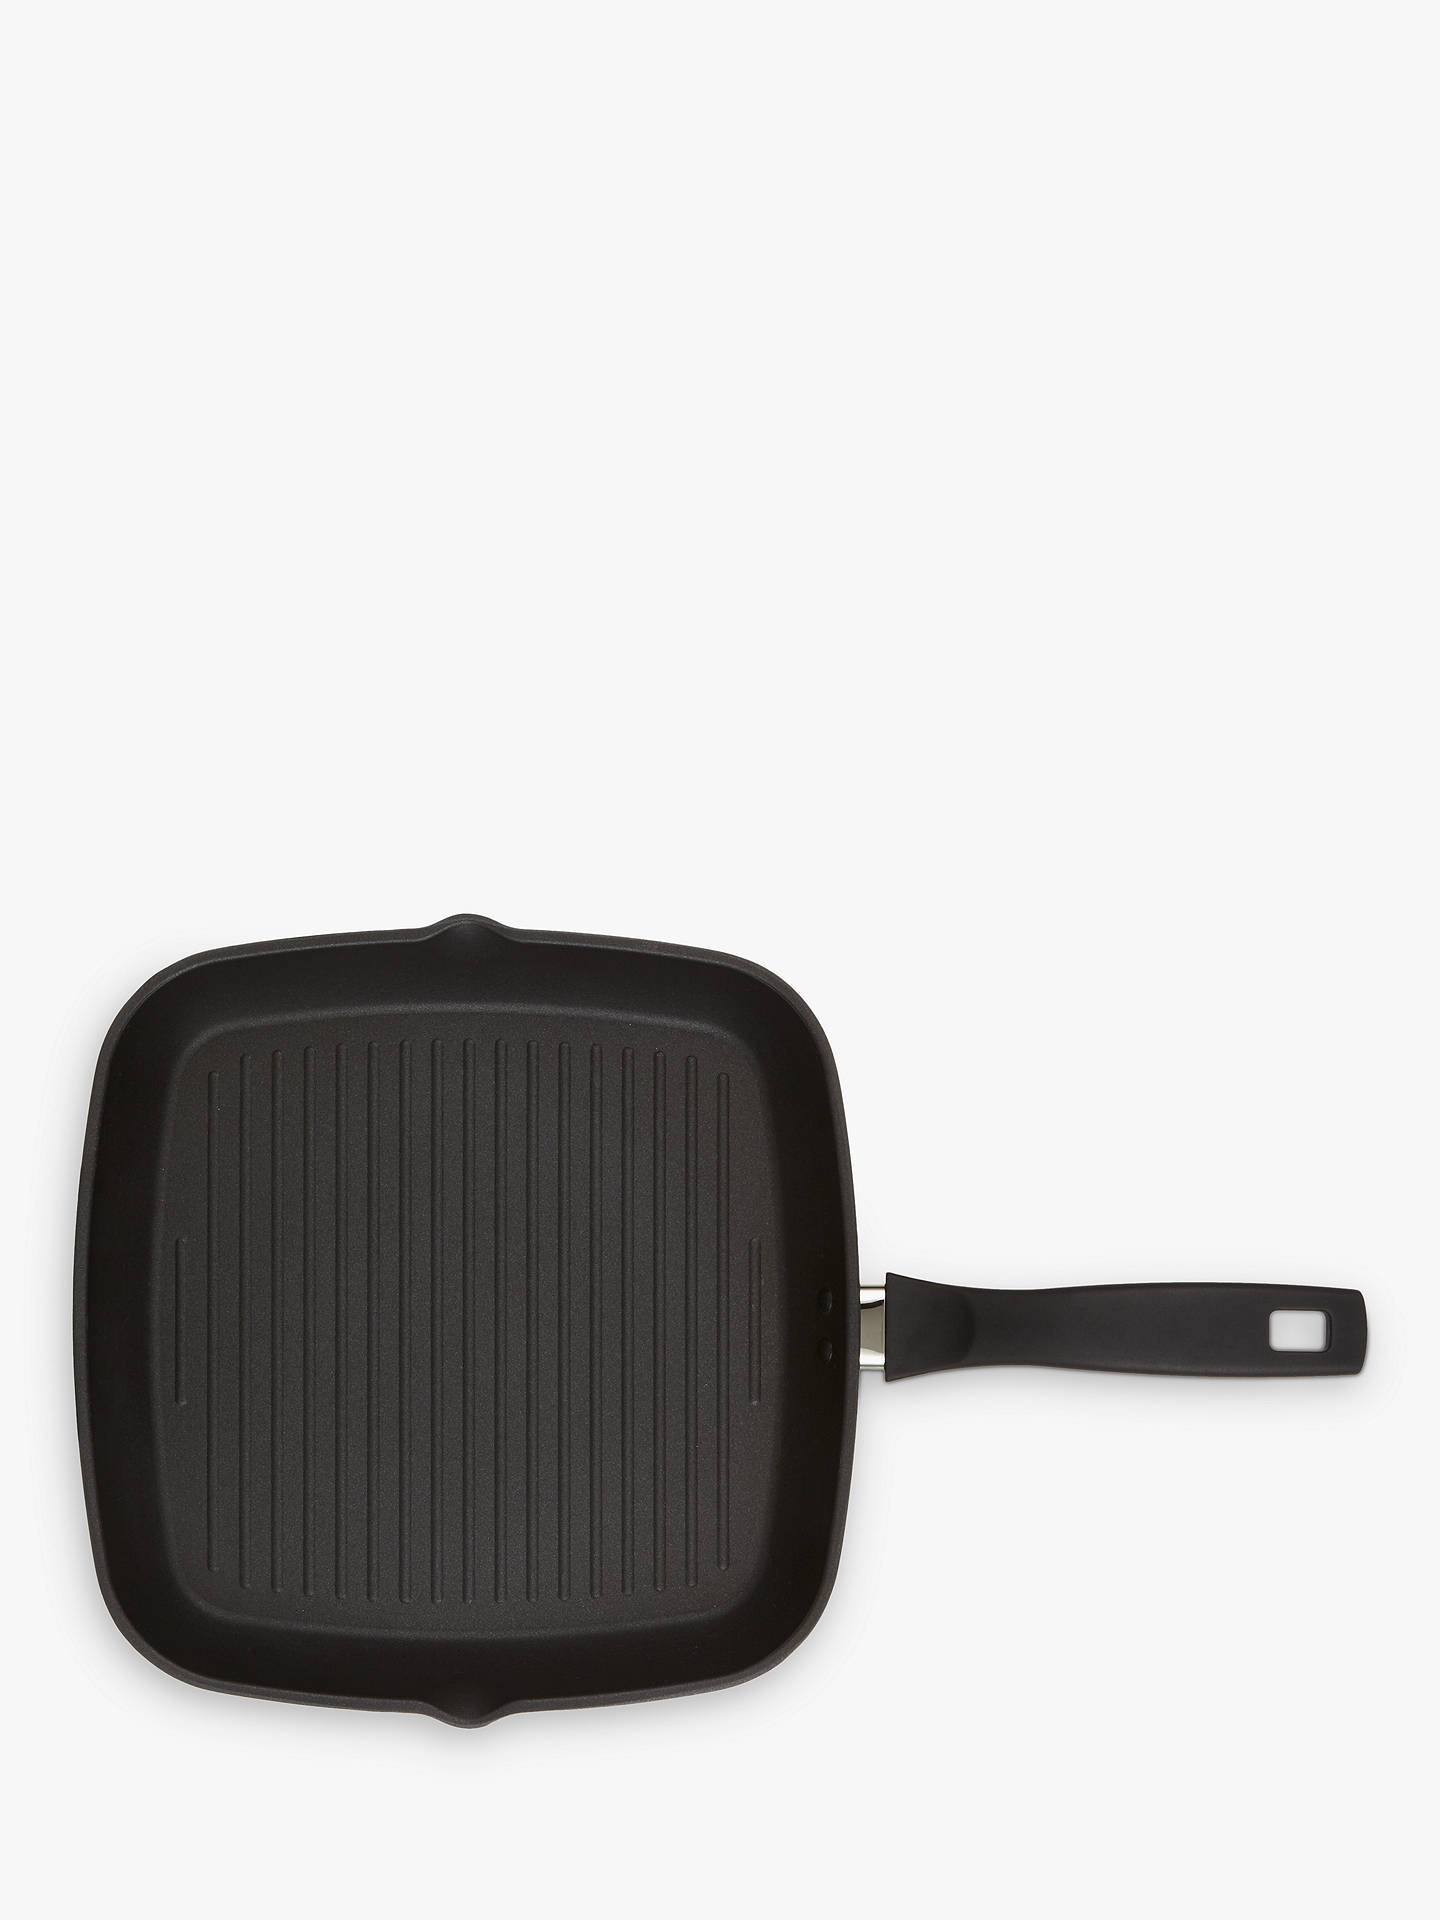 BuyJohn Lewis & Partners Hard Anodised Aluminium Non-Stick Grill Pan, 28cm Online at johnlewis.com